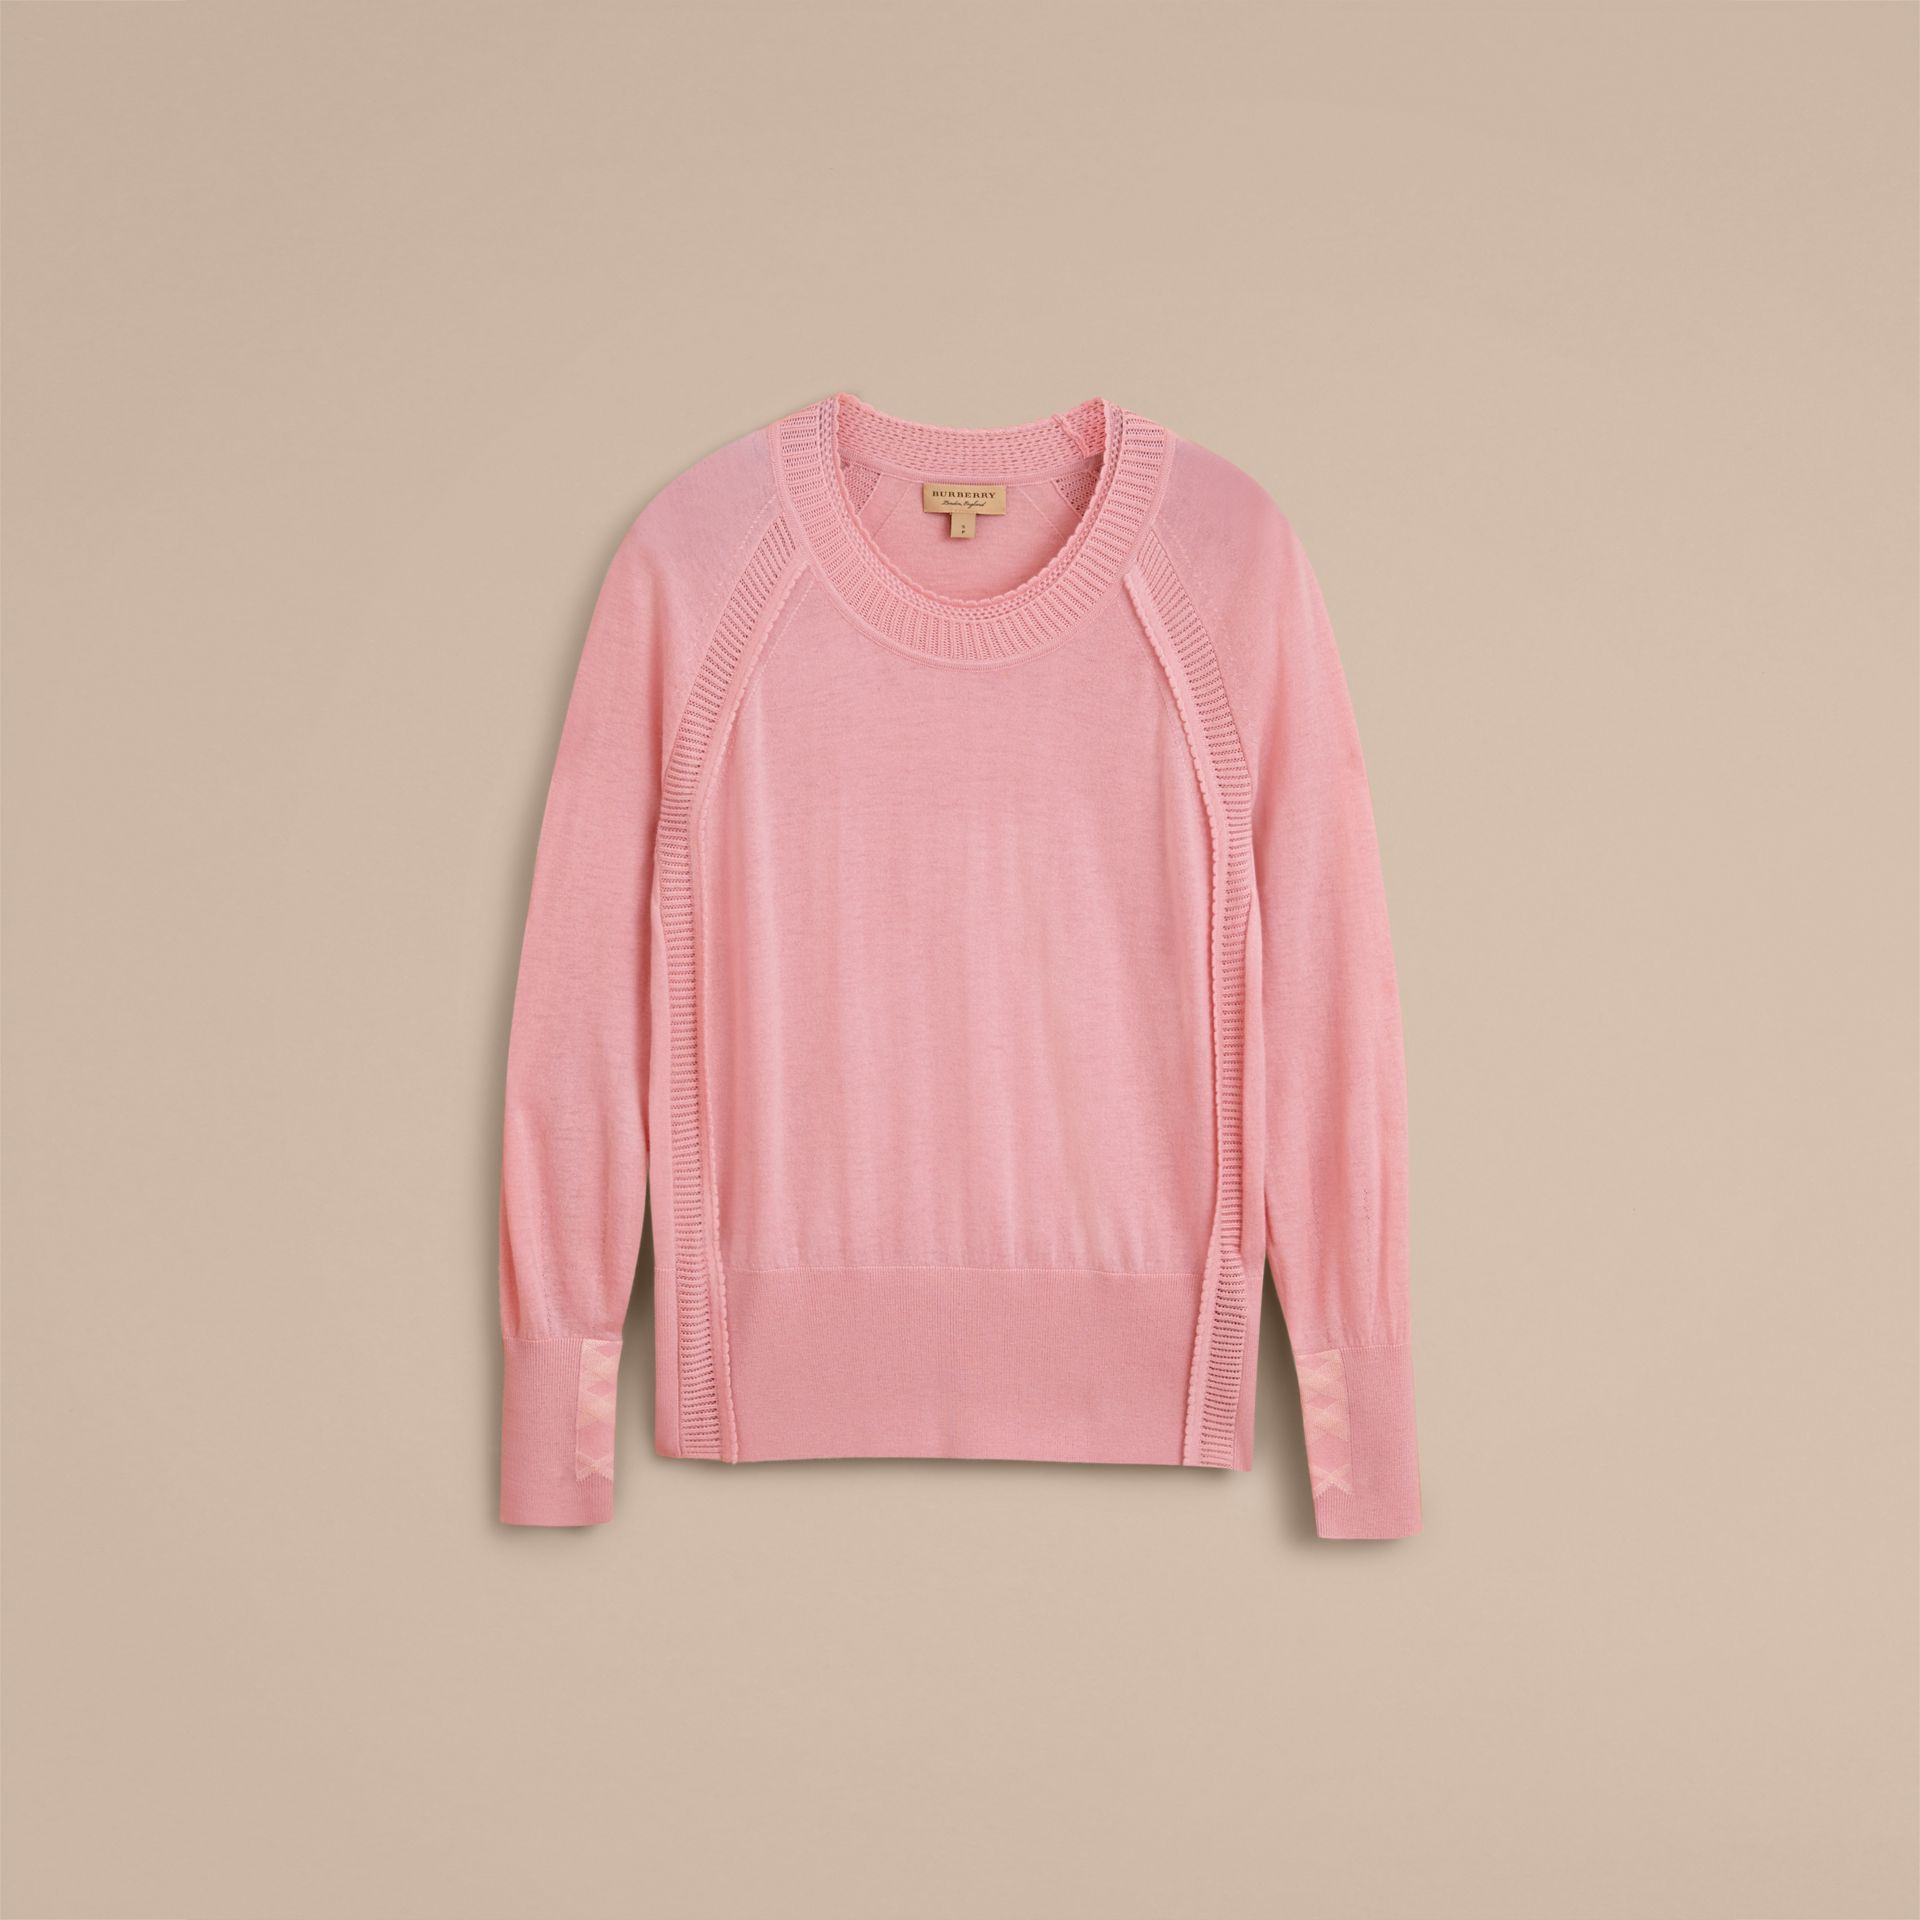 Open-knit Detail Cashmere Crew Neck Sweater in Apricot Pink - Women | Burberry Singapore - gallery image 4